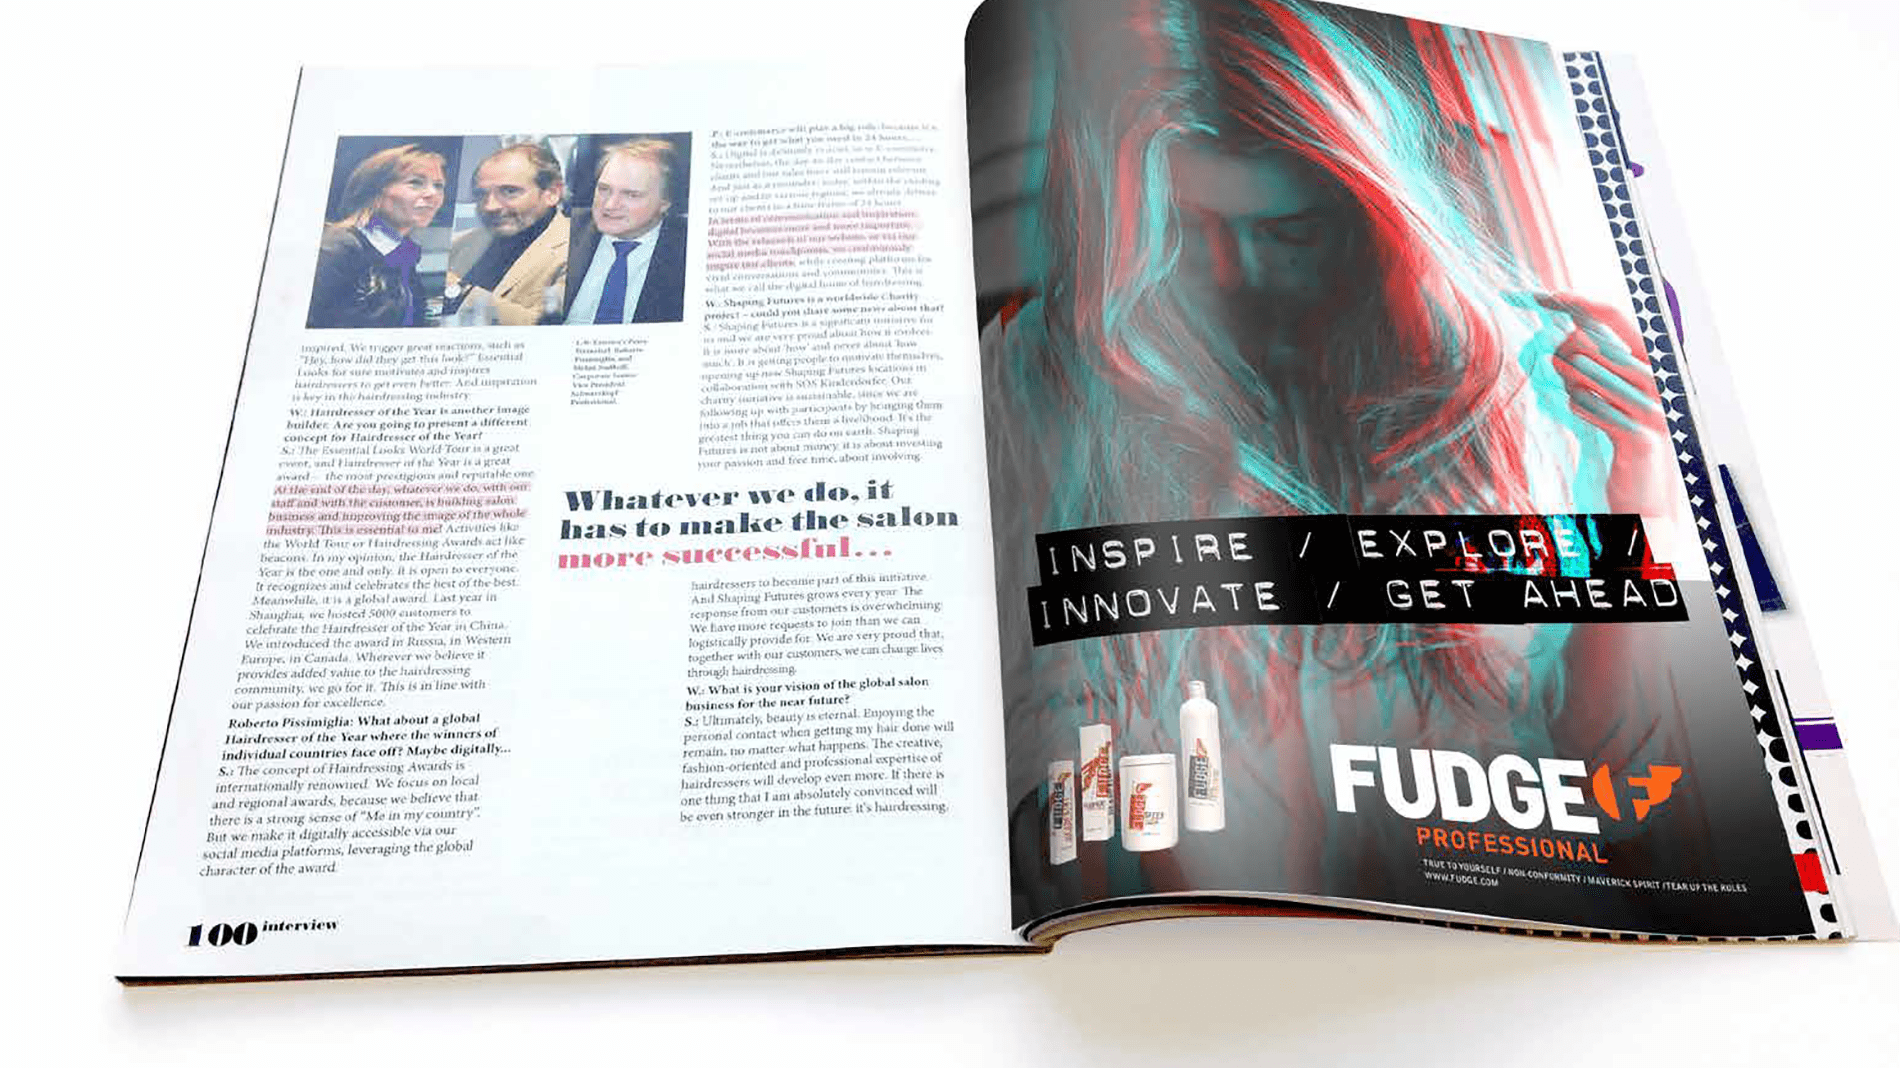 Magazine open spread with advert for Fudge Professional range